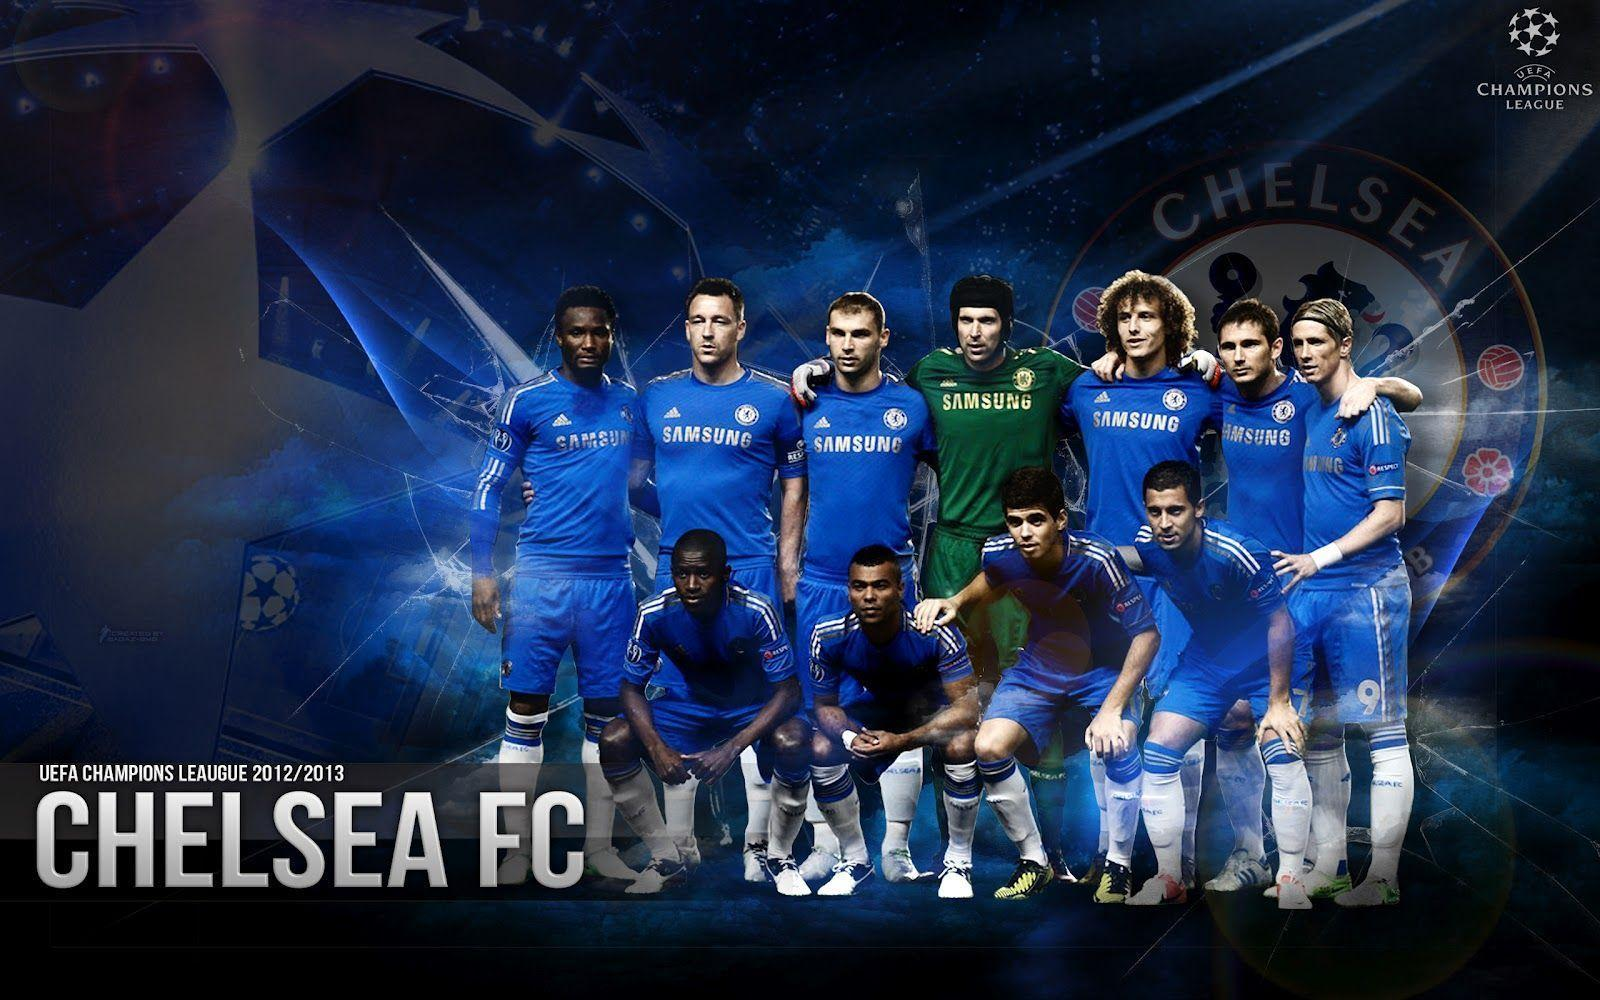 Chelsea Squad 2016 Wallpapers